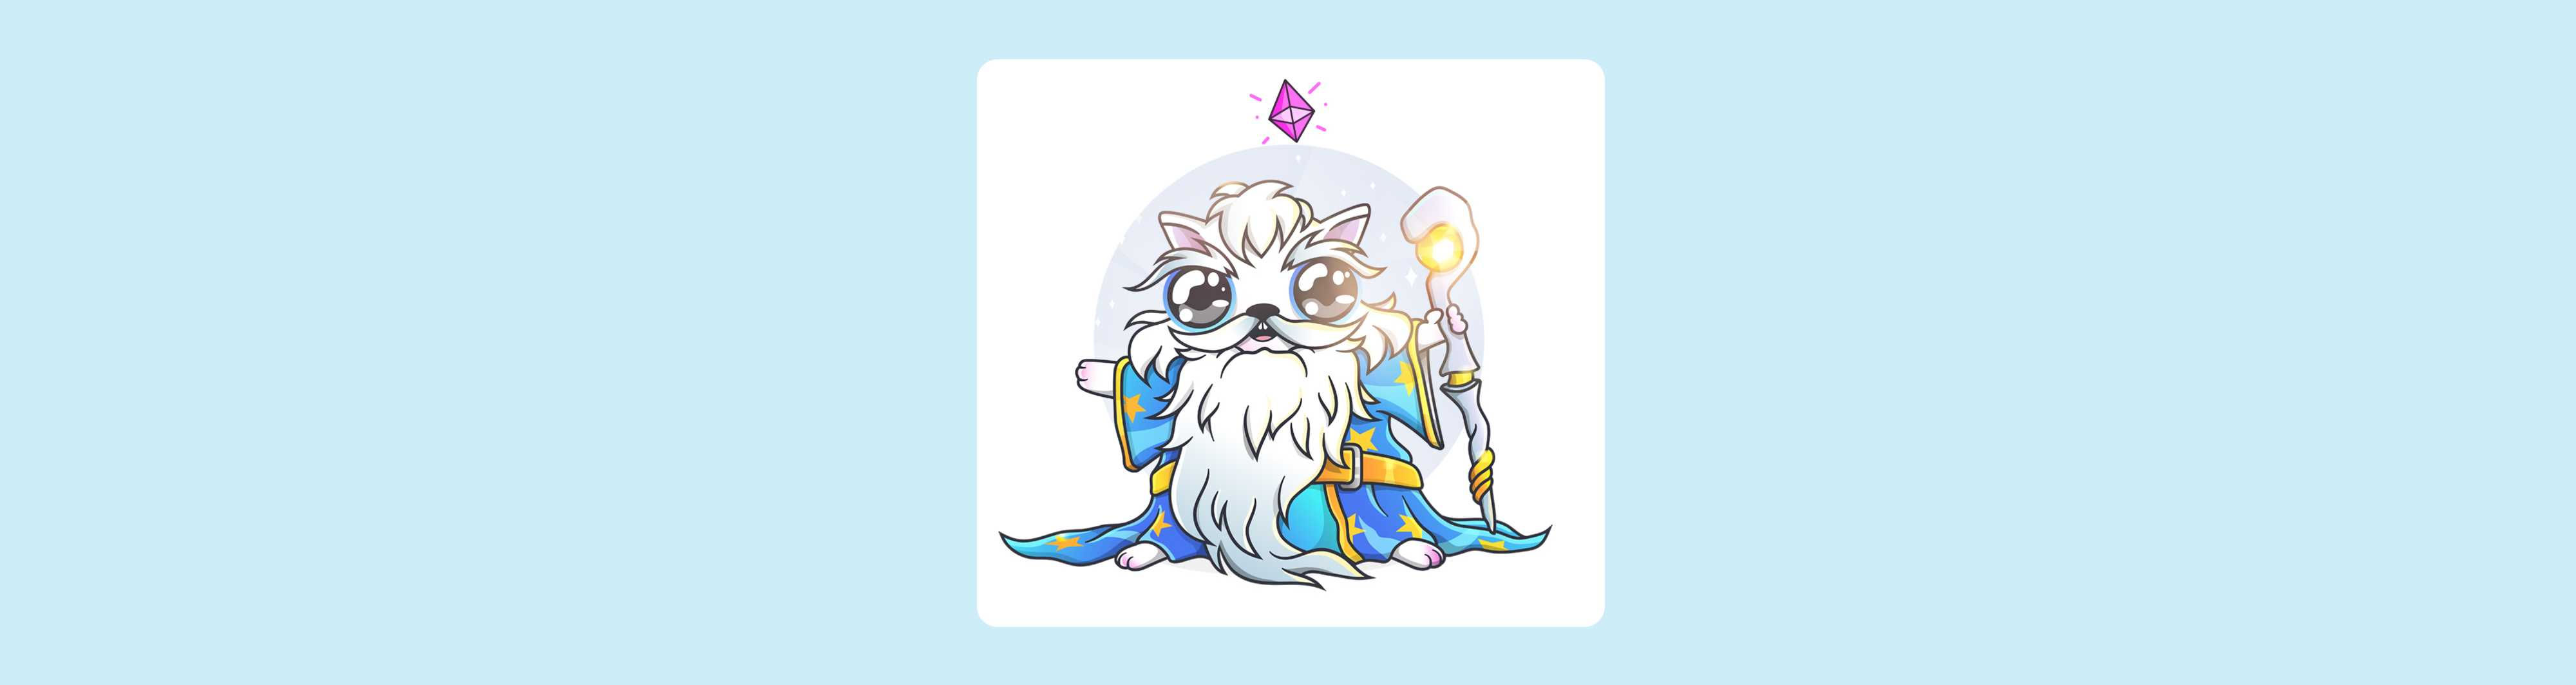 How to get Furlin, one of the most magical CryptoKitties